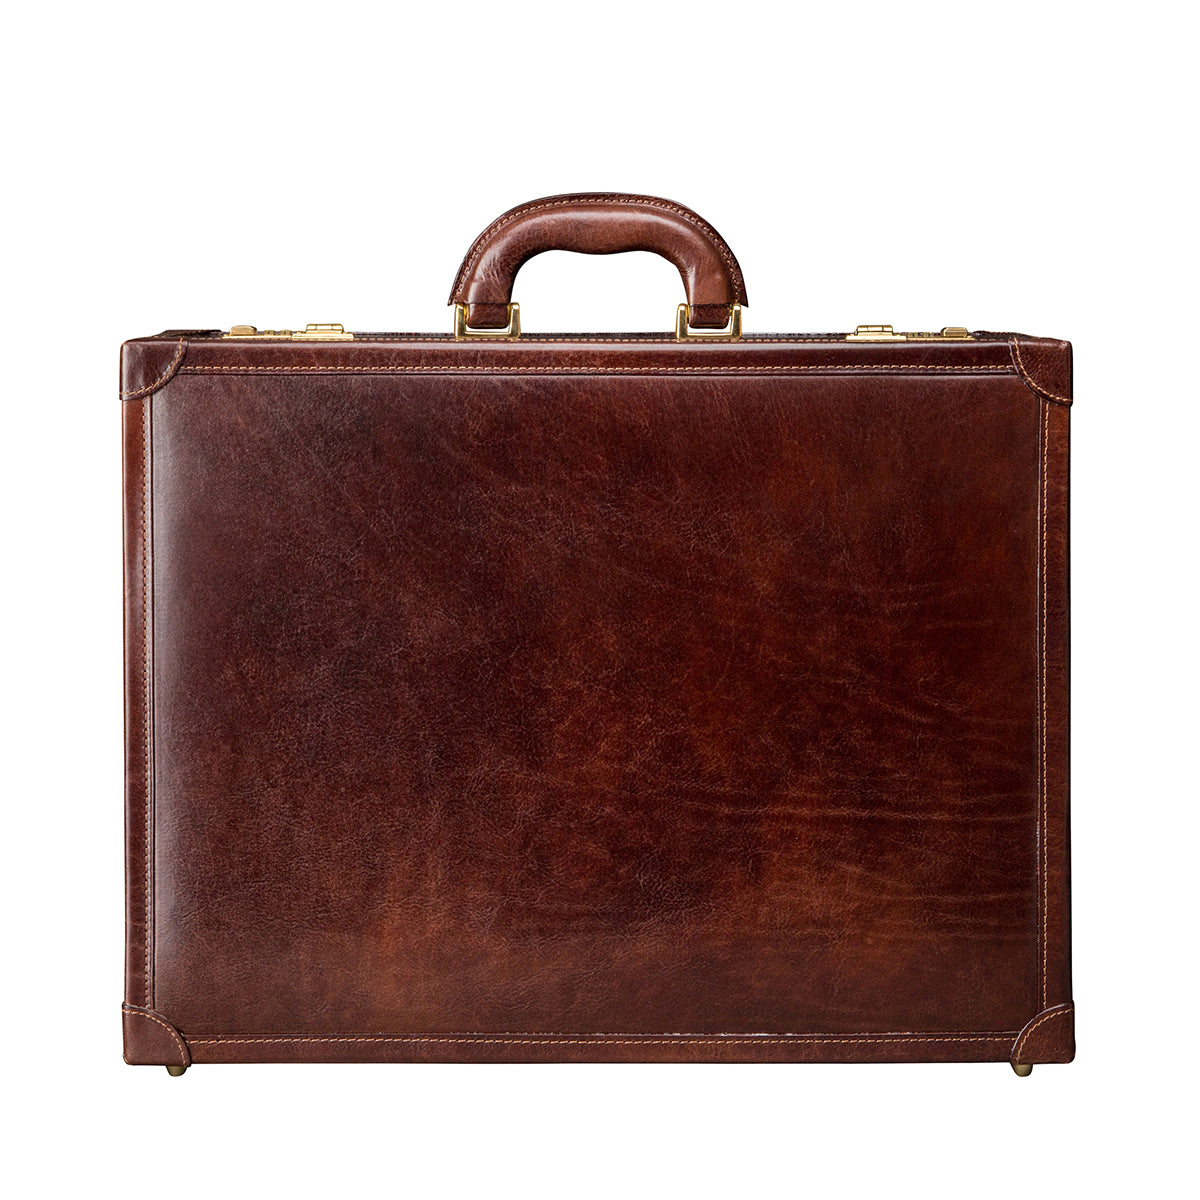 Image 1 of the 'Buroni' Dark Chocolate Veg-Tanned Leather Business Attaché  Case